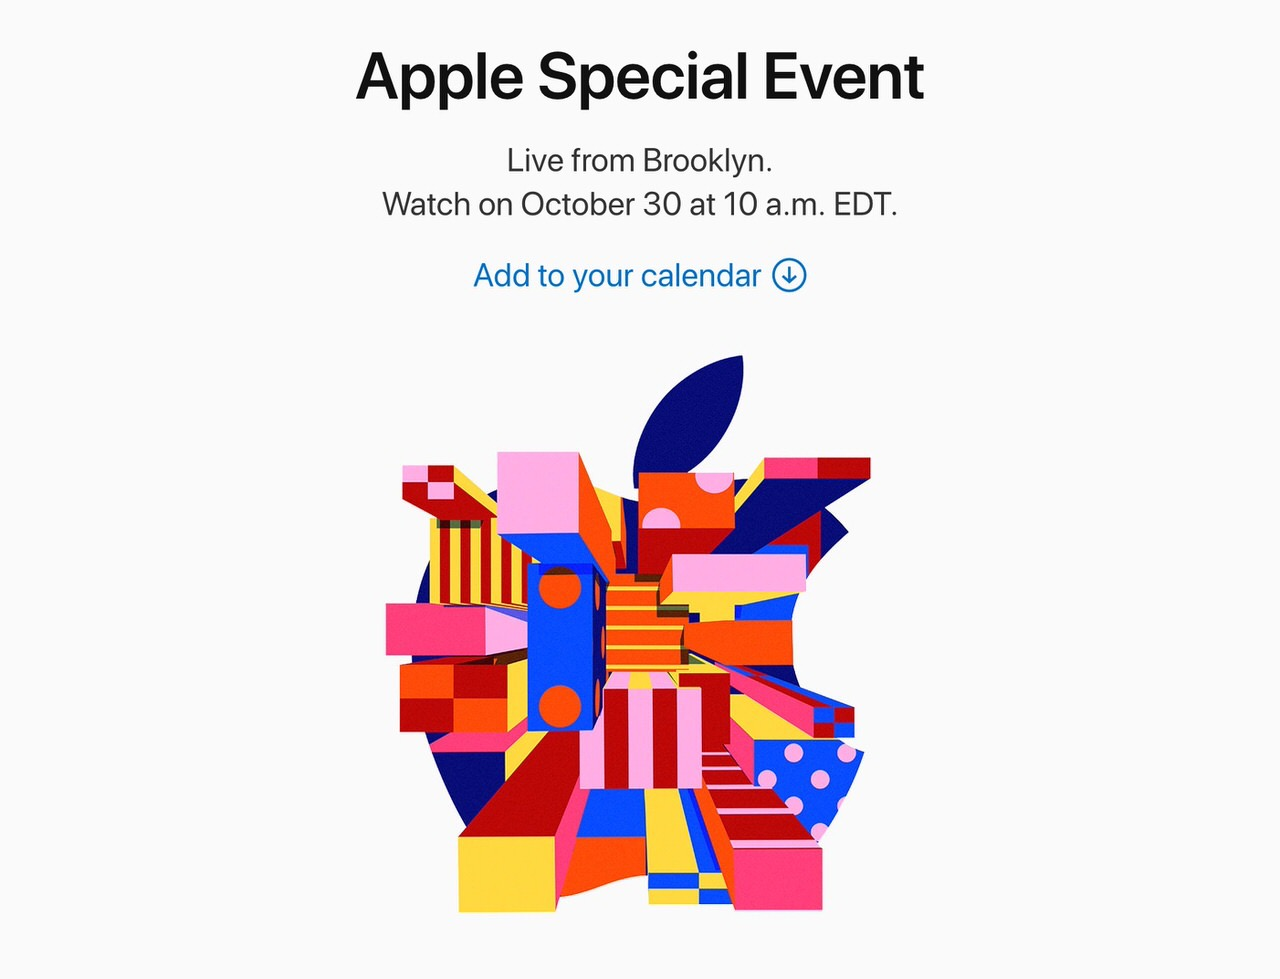 Apple、ブルックリンで「Apple Special Event」2018年10月30日に開催を発表